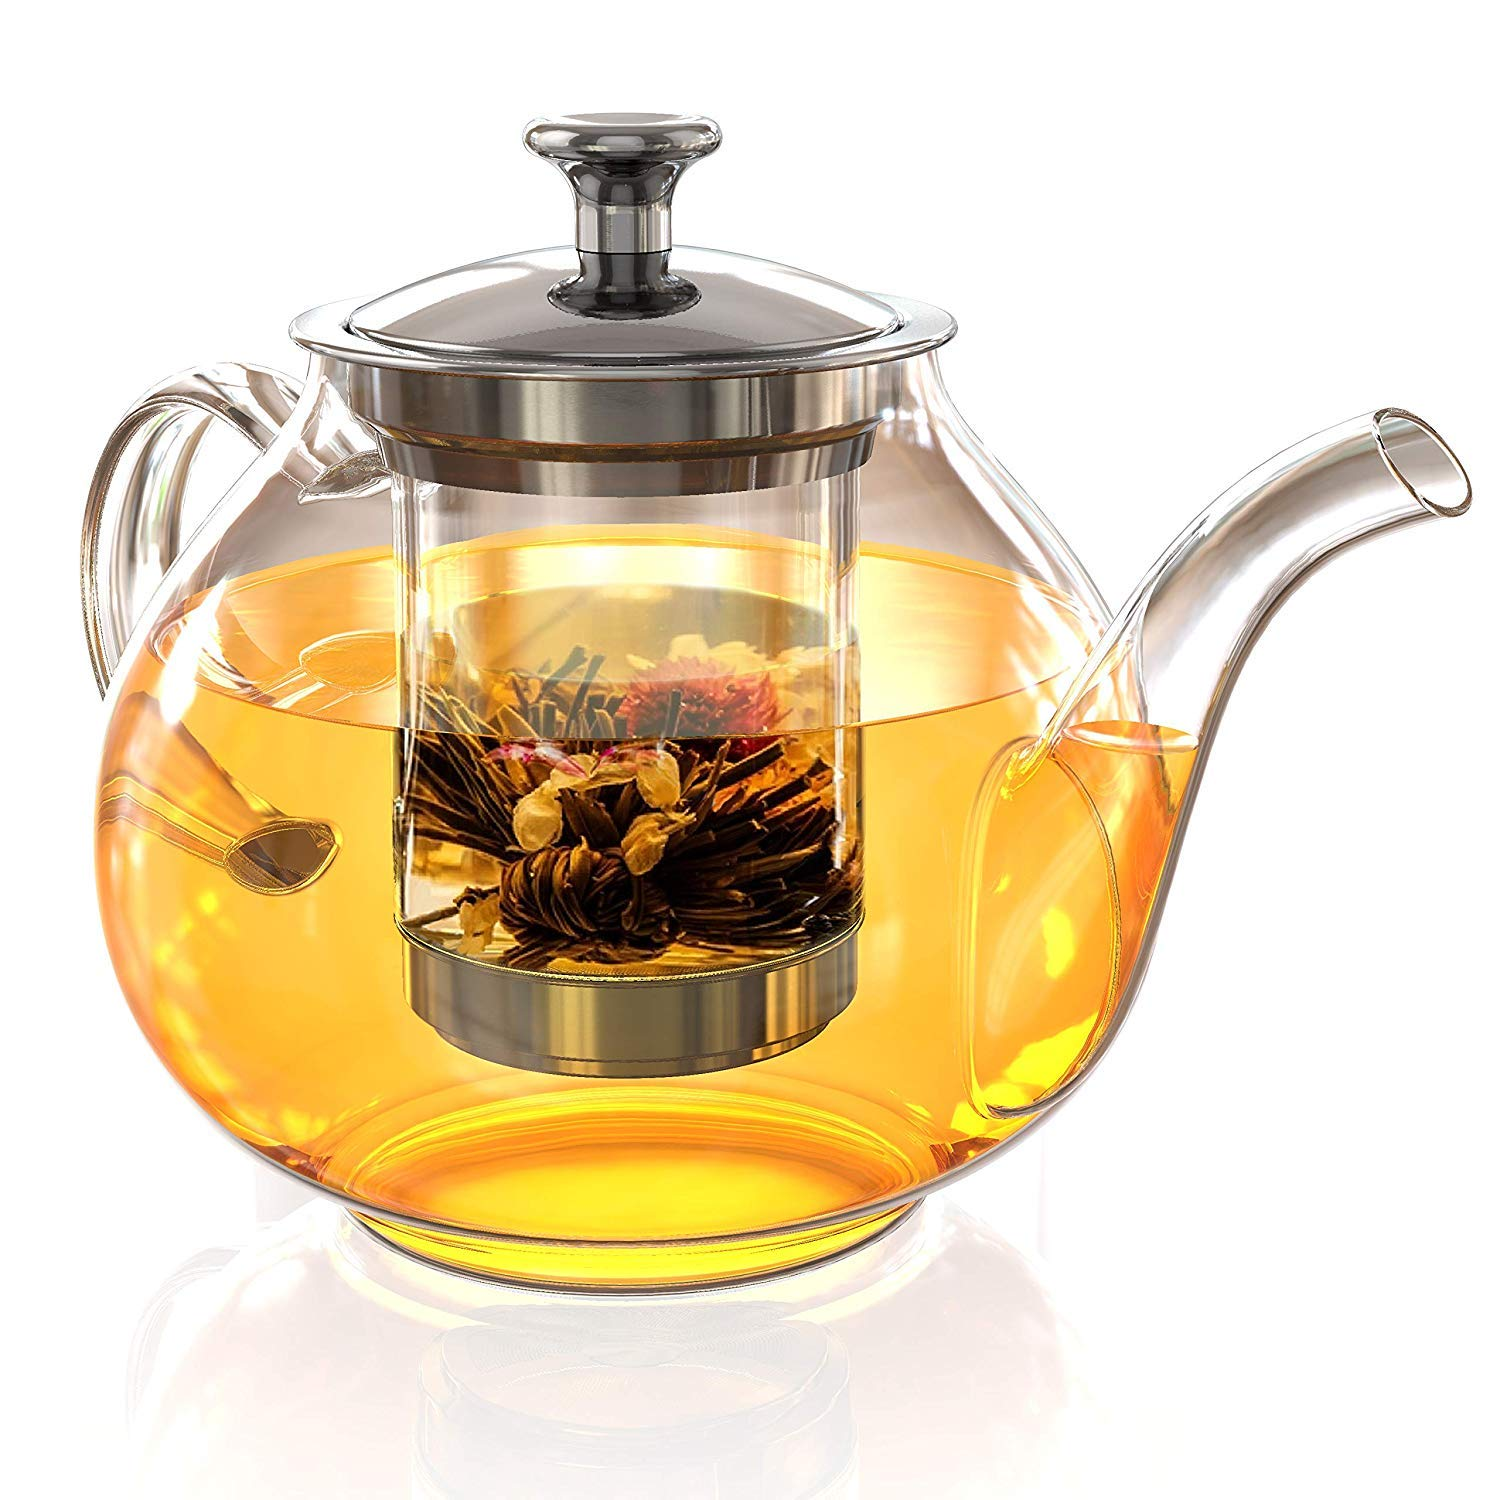 Glass Tea Pot Set - Loose Leaf Tea Pot with Infuser and Lid - Teapot with Strainer - Tea maker 27 oz LeBaux